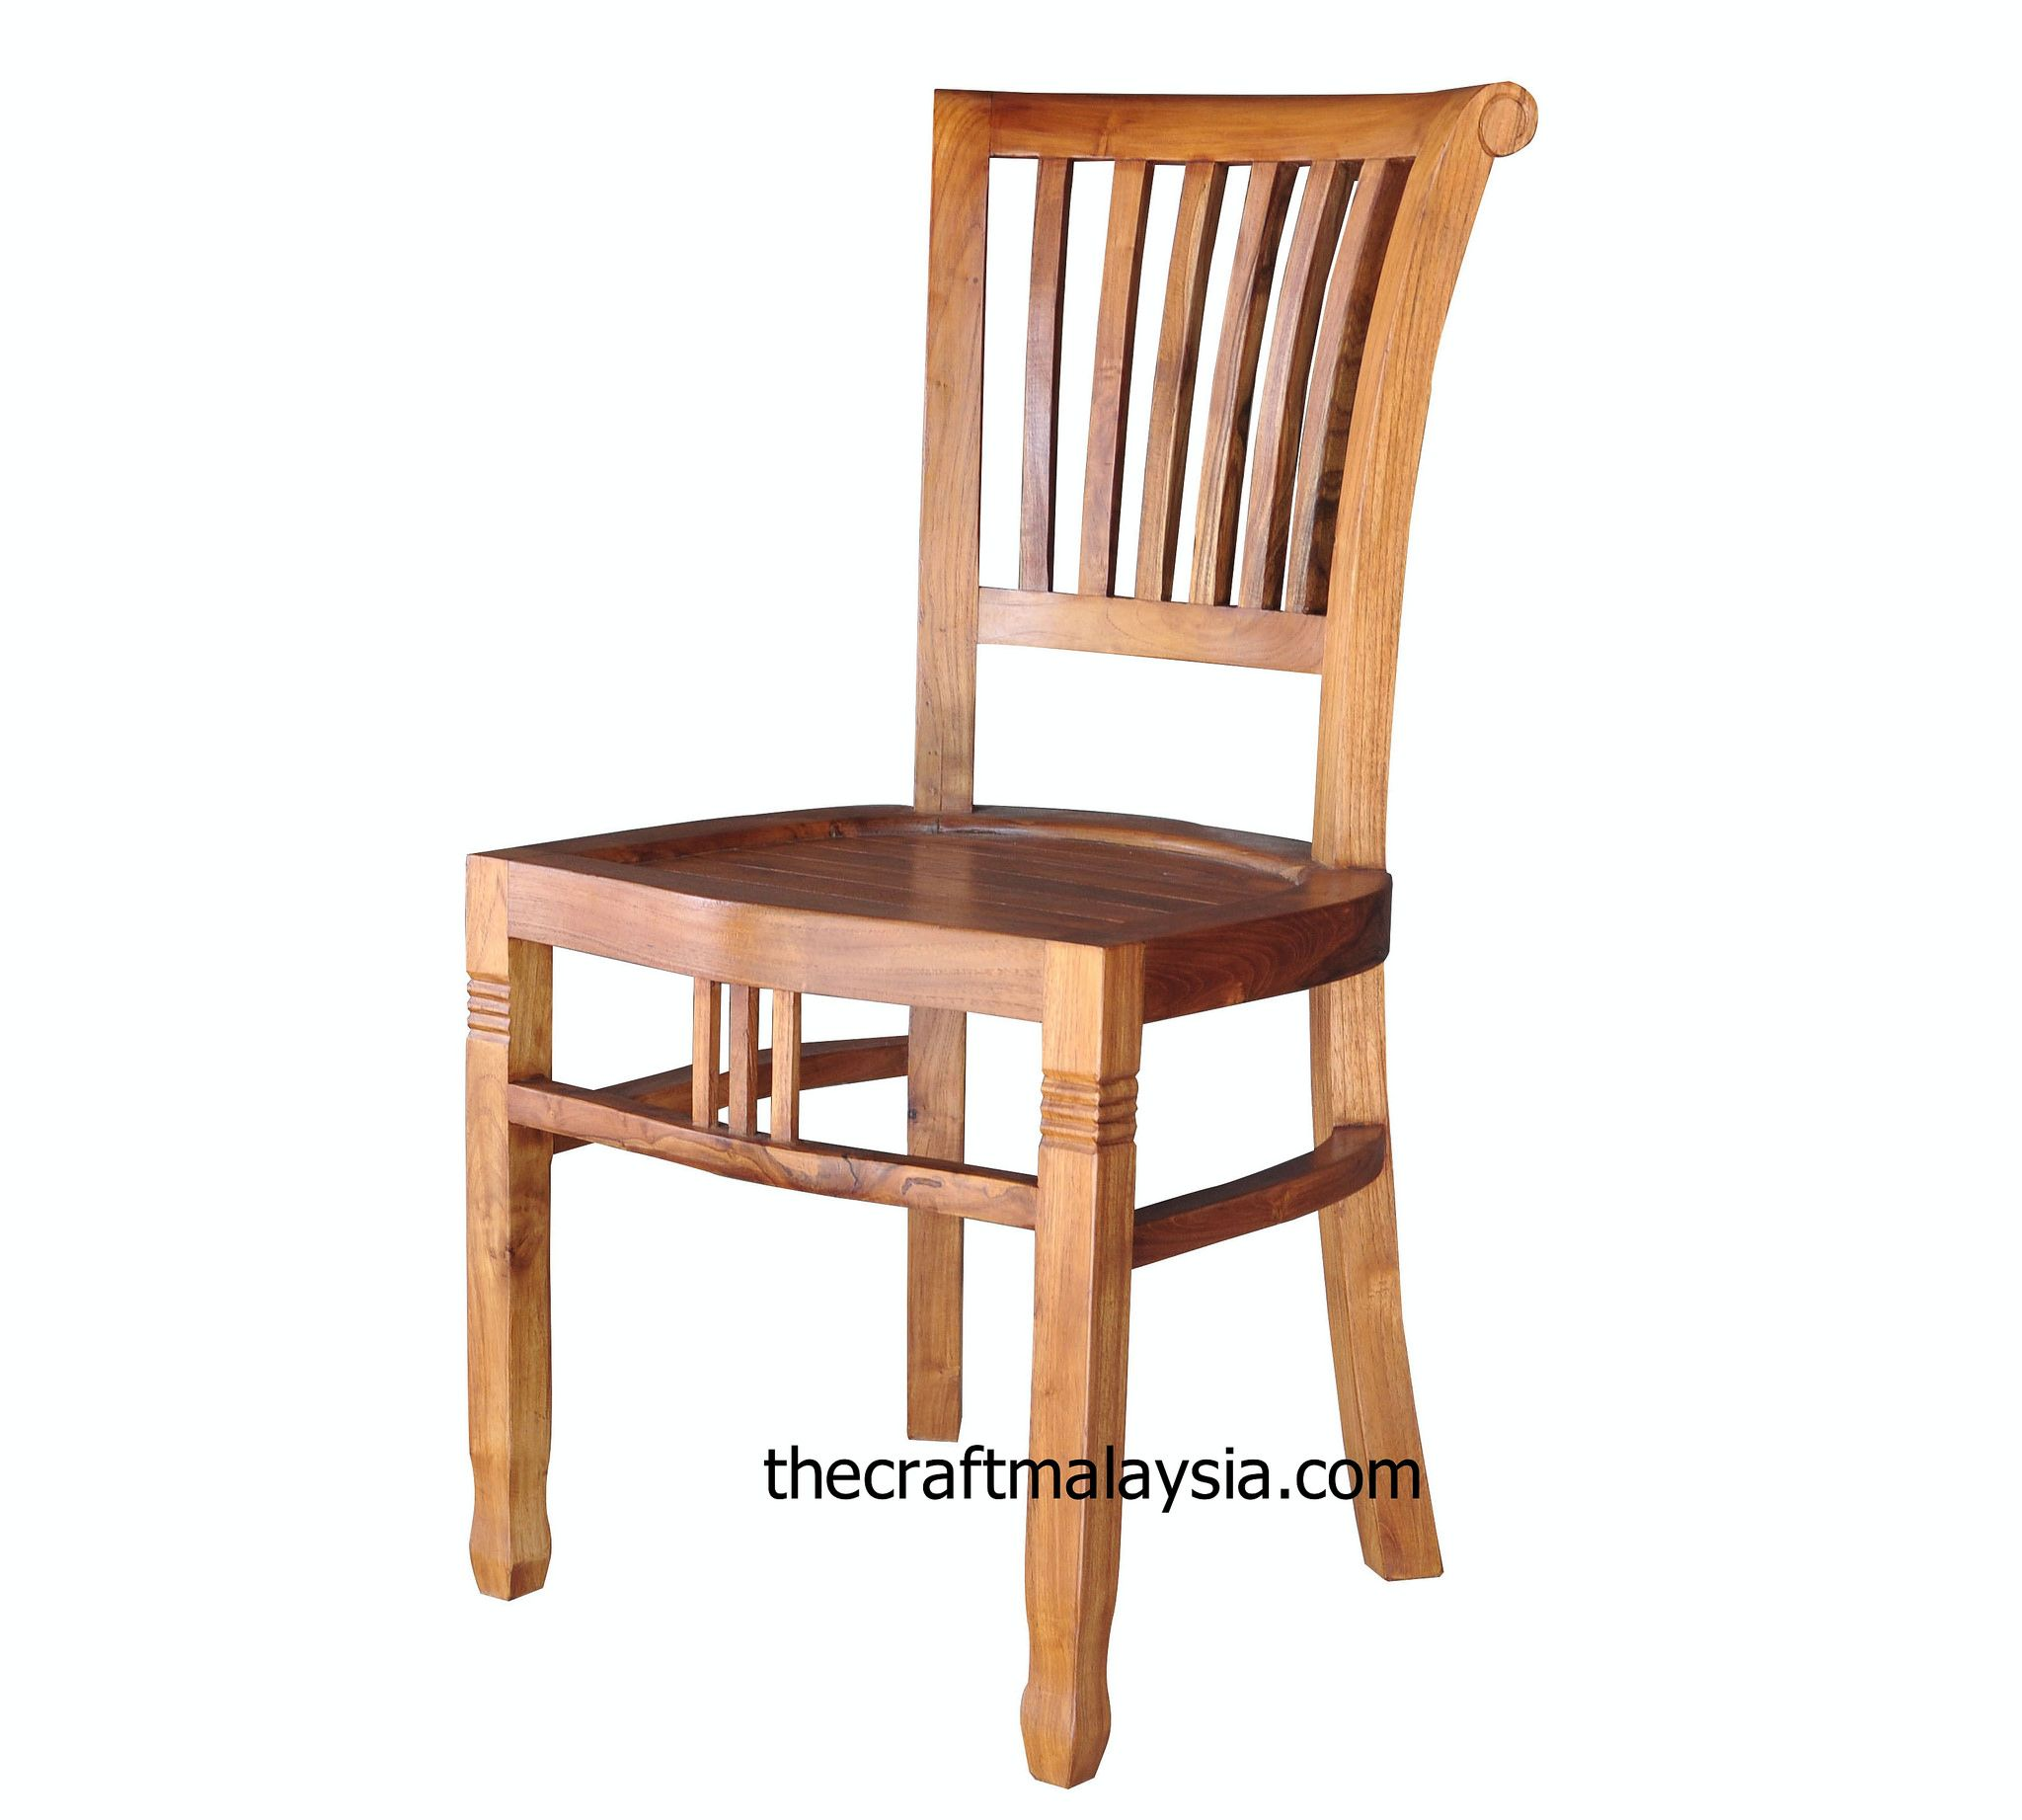 stool chair in malay overstuffed cover cario dining restaurent furniture sets